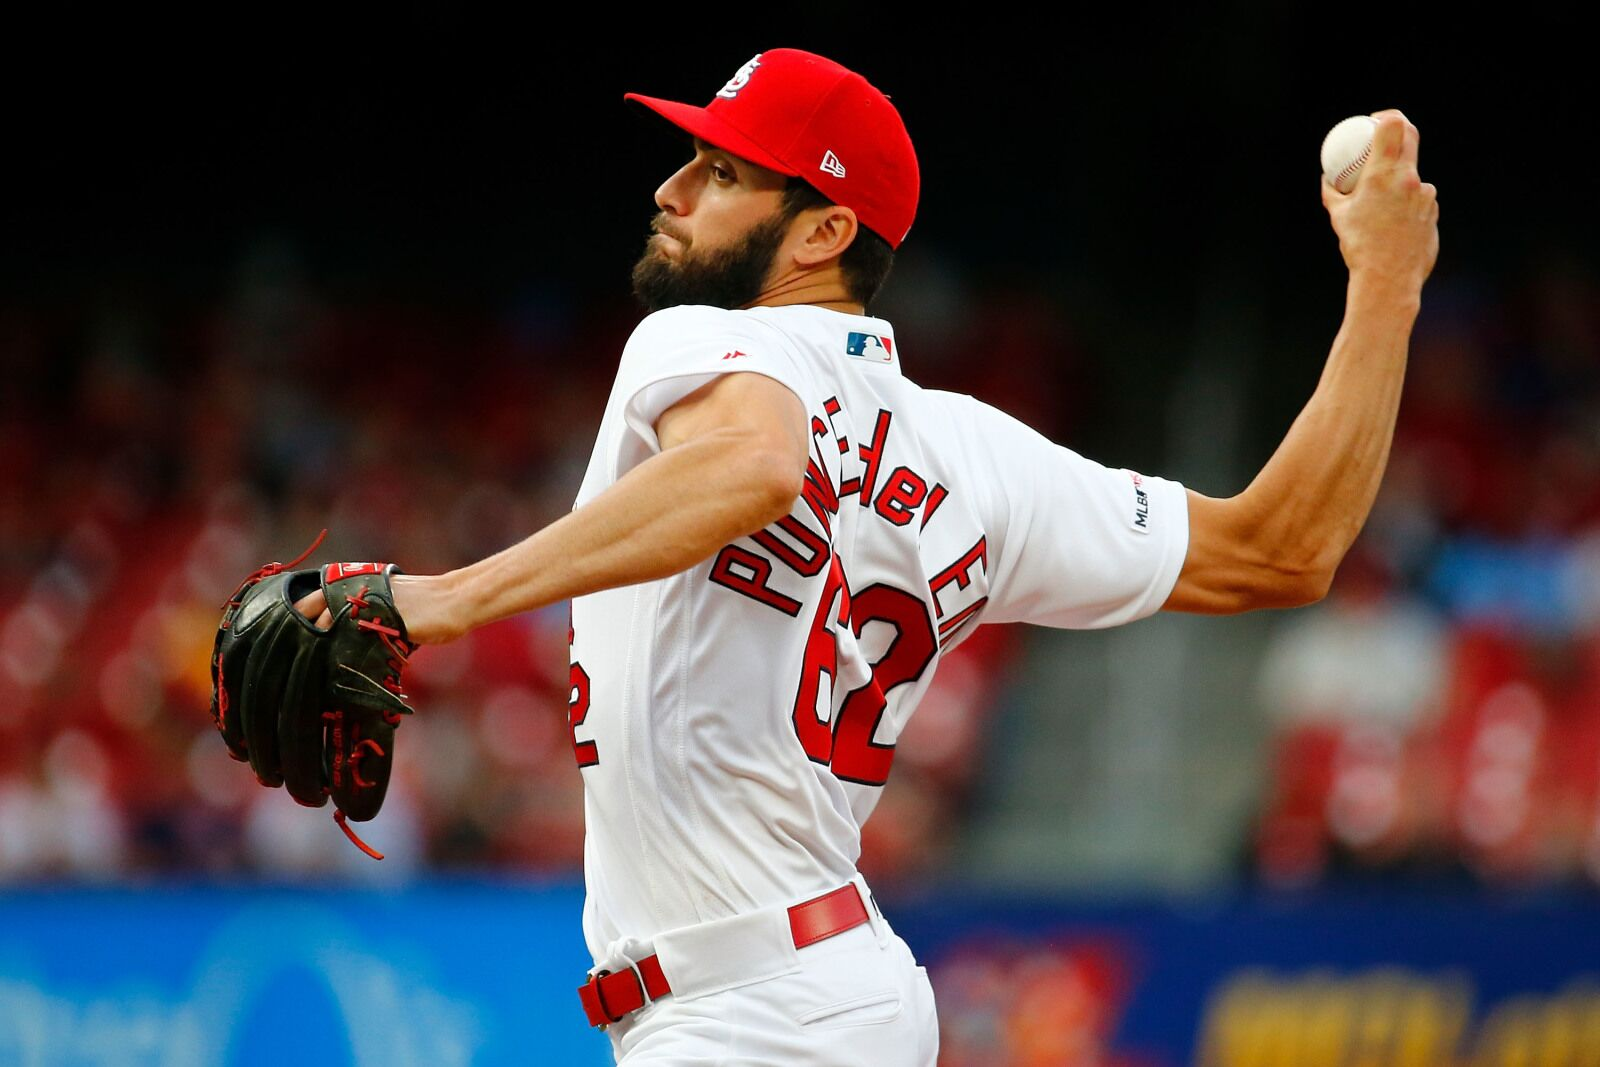 St. Louis Cardinals: Who will take Wacha's spot in the rotation?